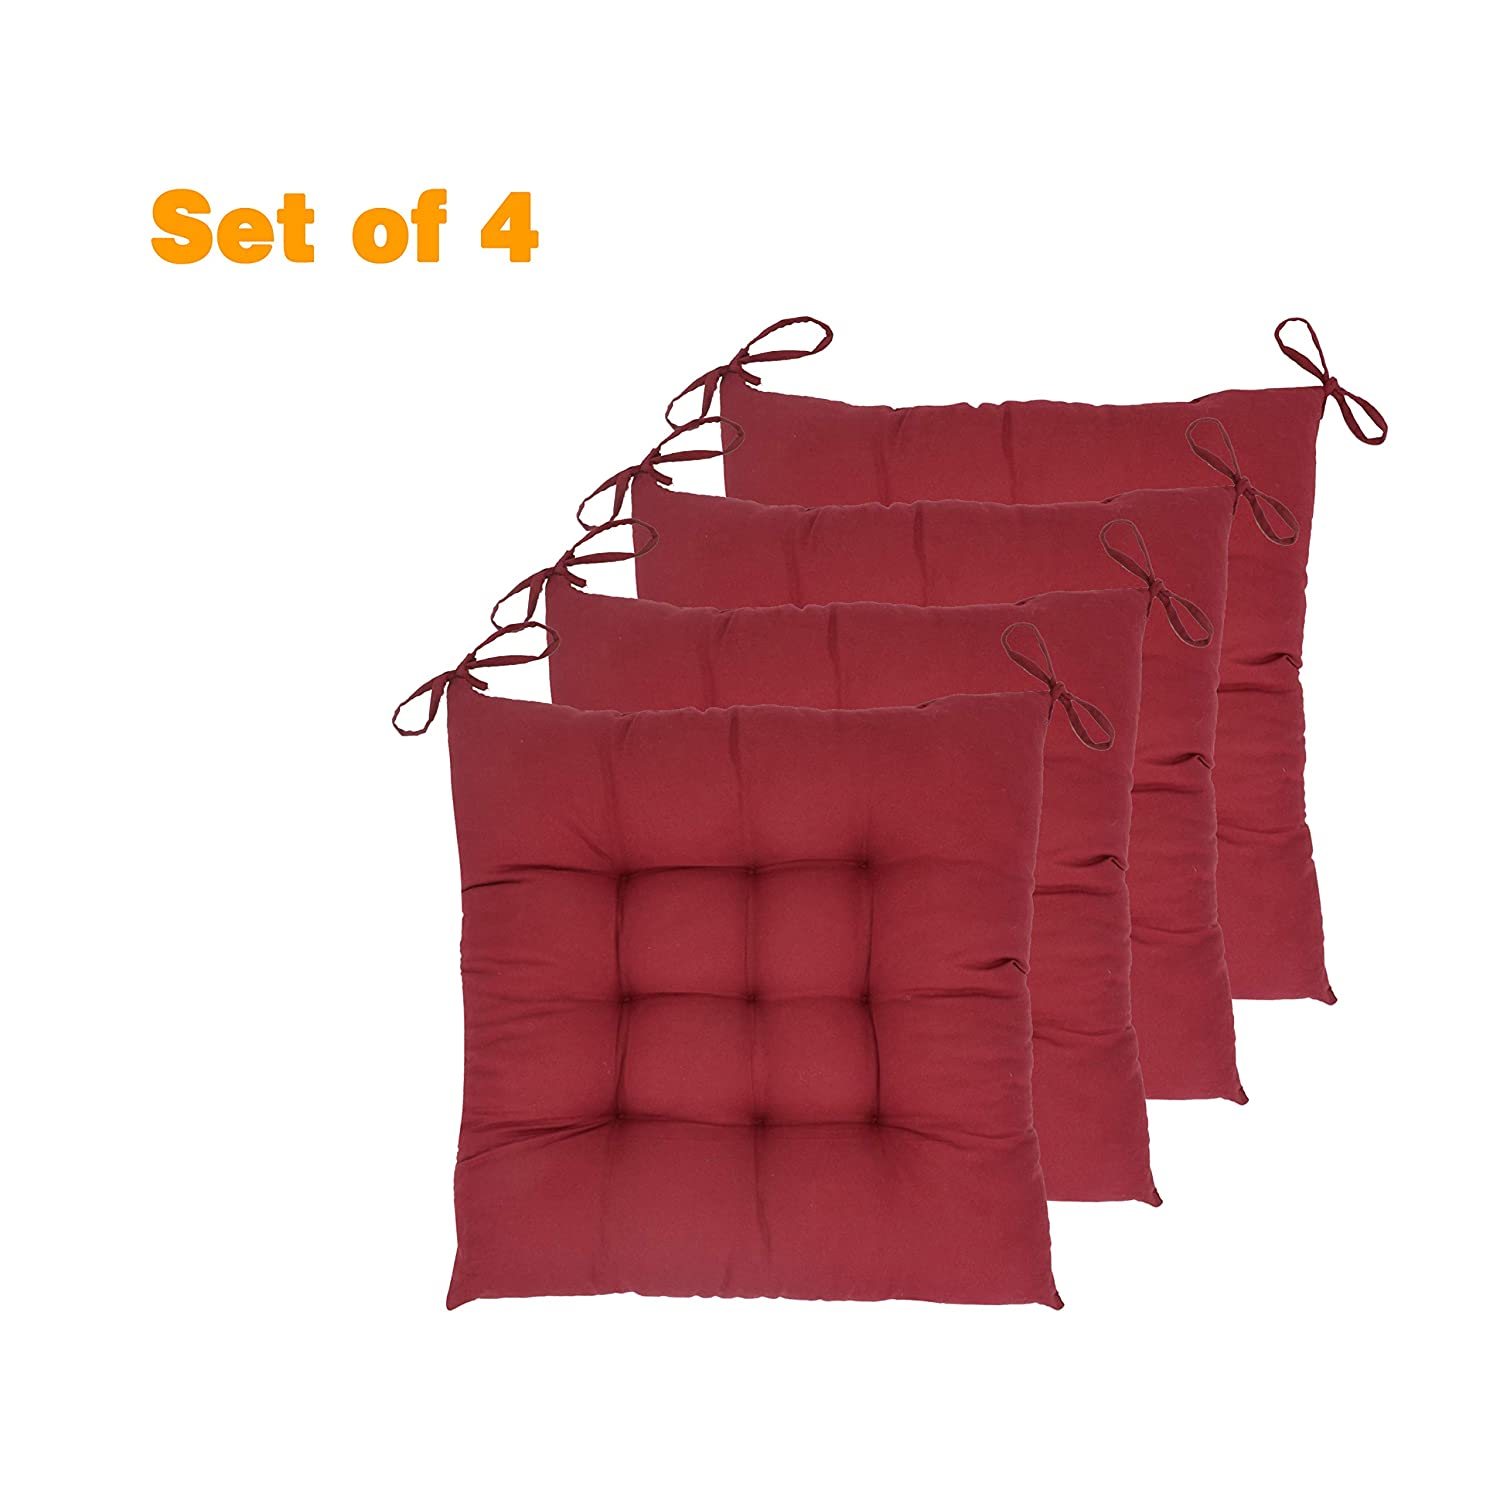 """ELFJOY Set of 4 Solid Square 17"""" x 17"""" Tufted Chair Pads Indoor Seat Cushions Pillows with Ties (Burgundy)"""